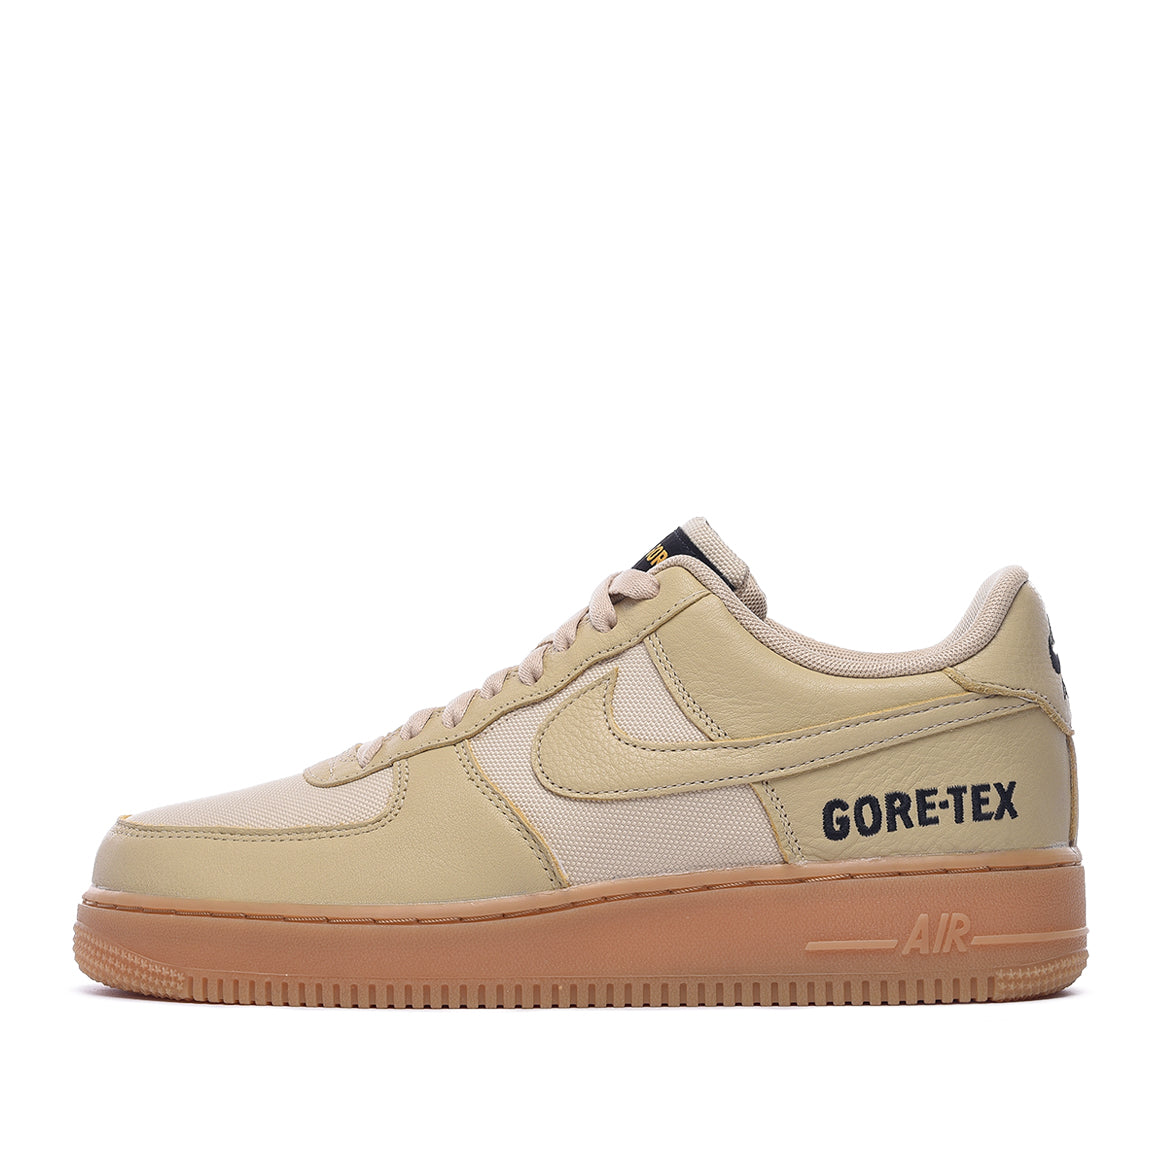 "AIR FORCE 1 ""GORE-TEX"" - TEAM GOLD /  KHAKI"